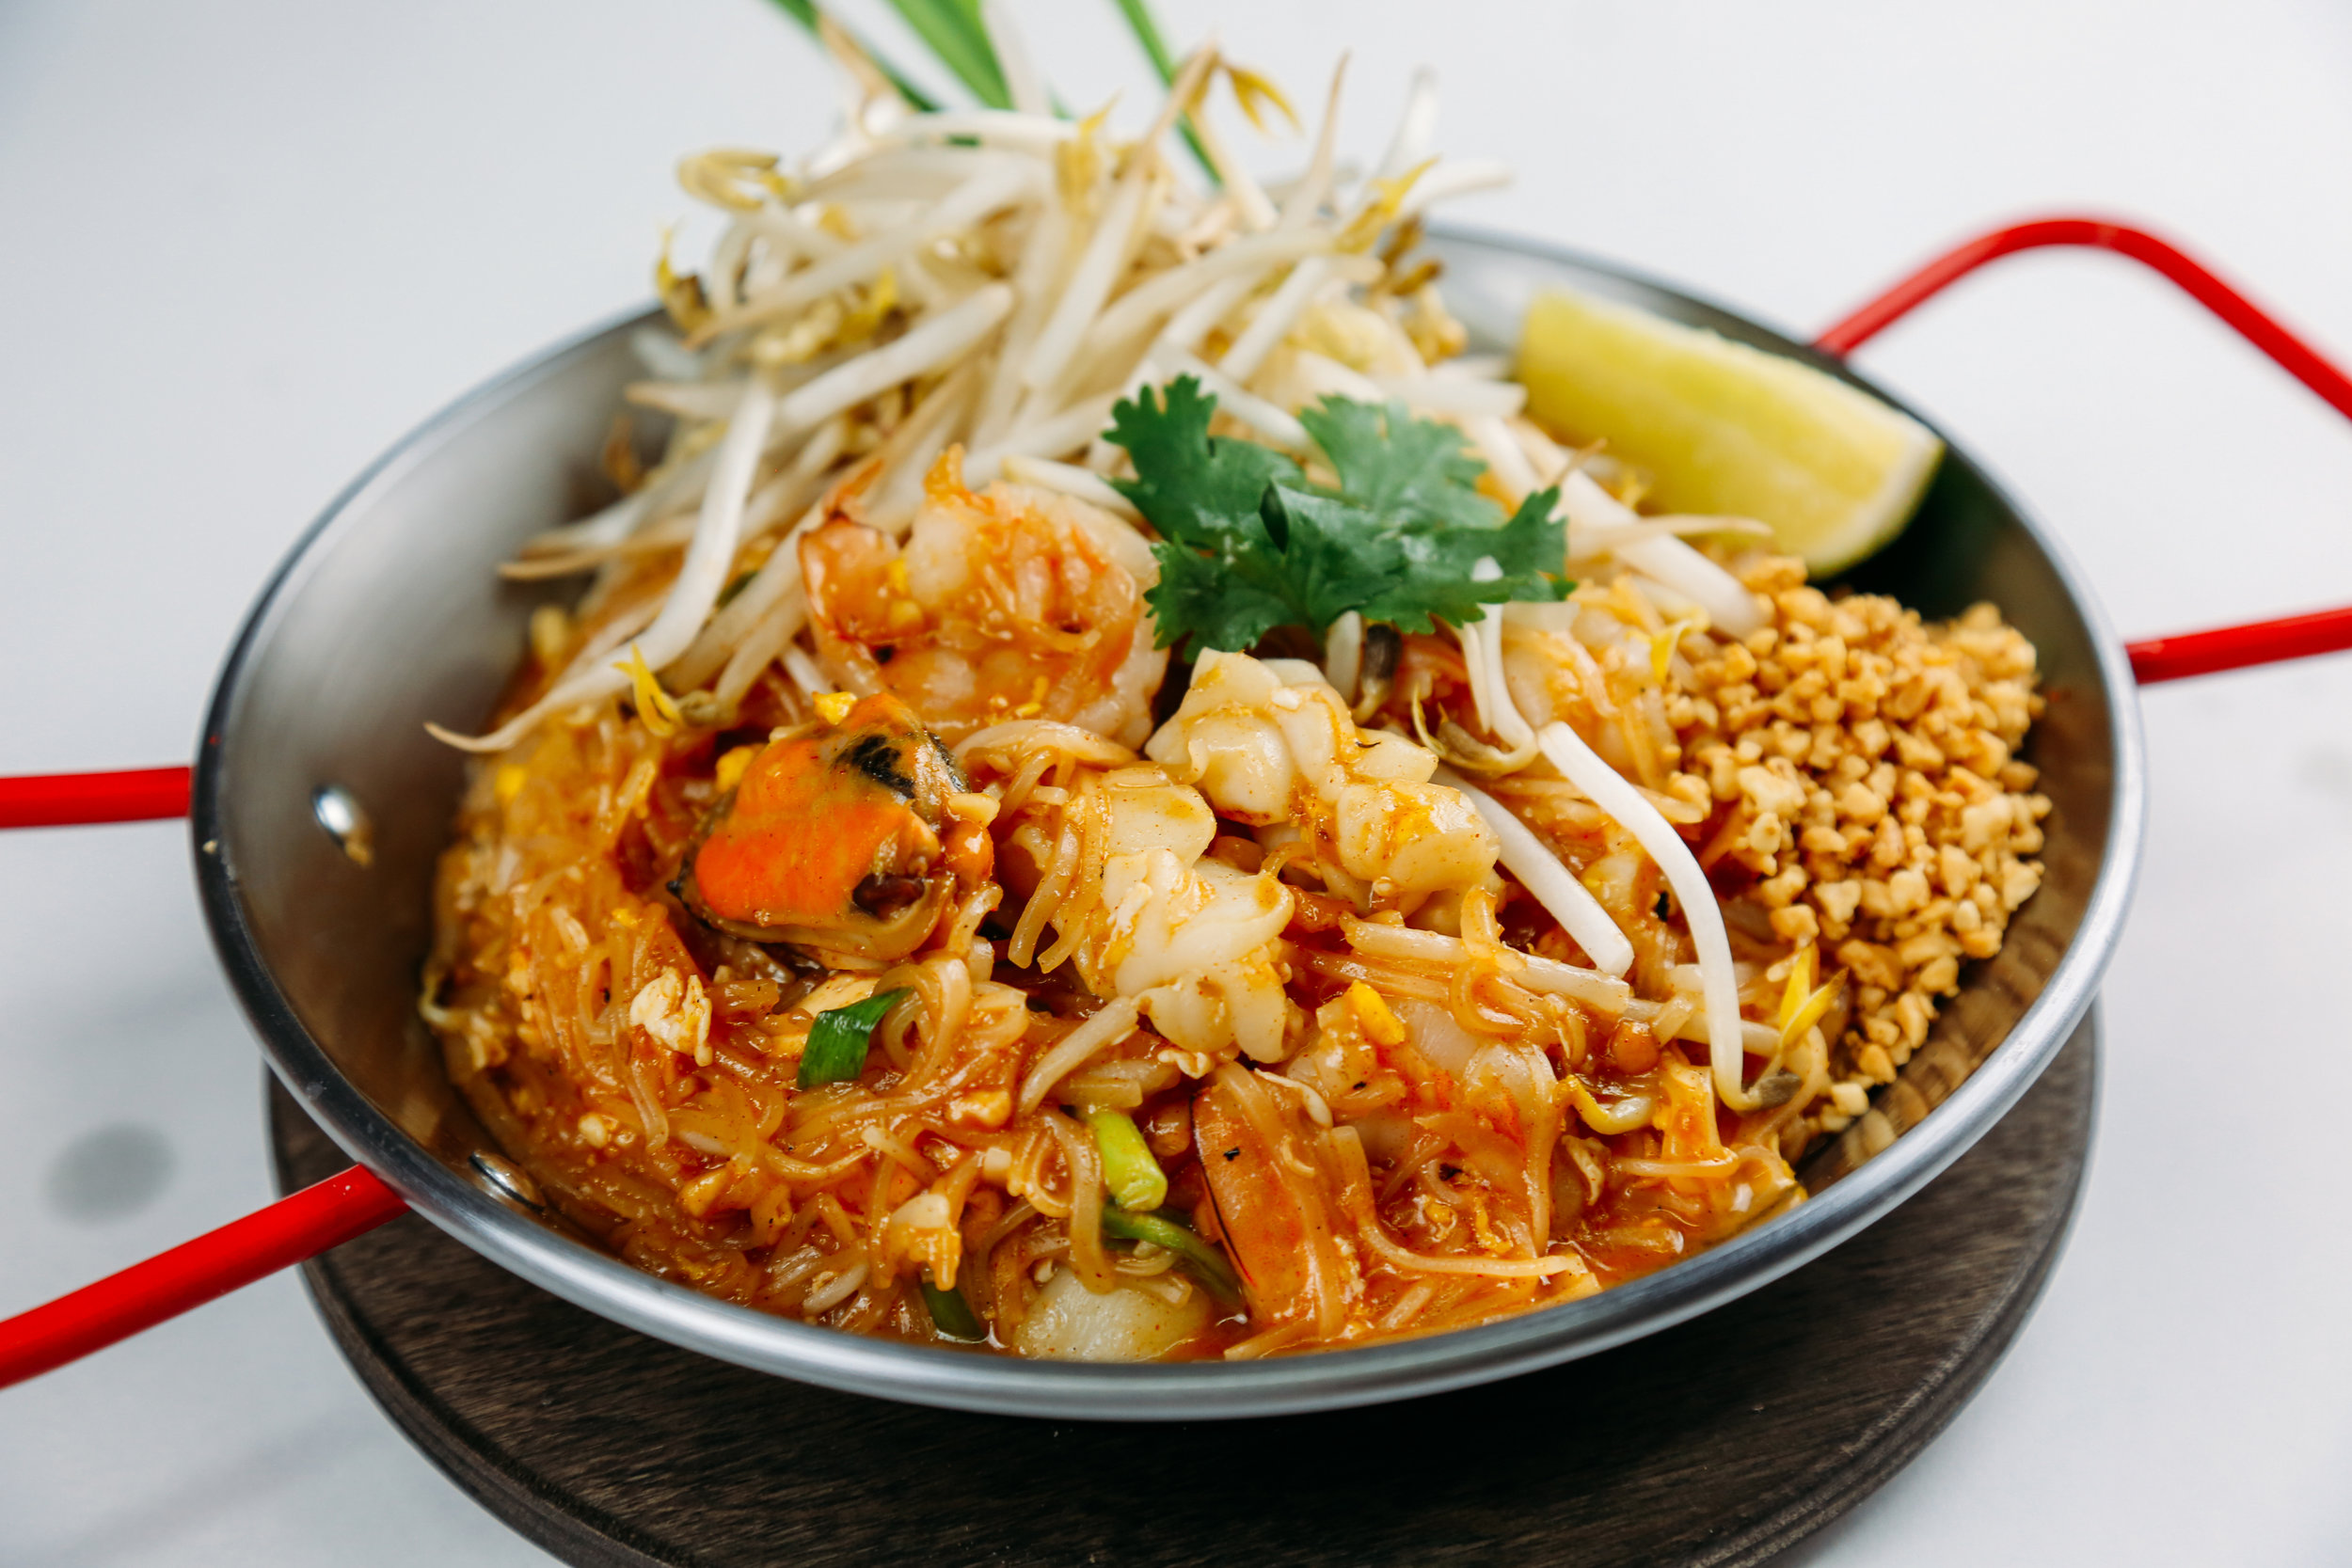 Pad Thai - Thin rice noodles or glass noodles, egg,Thai chive, bean sprouts androasted peanut with tamarine sauce.